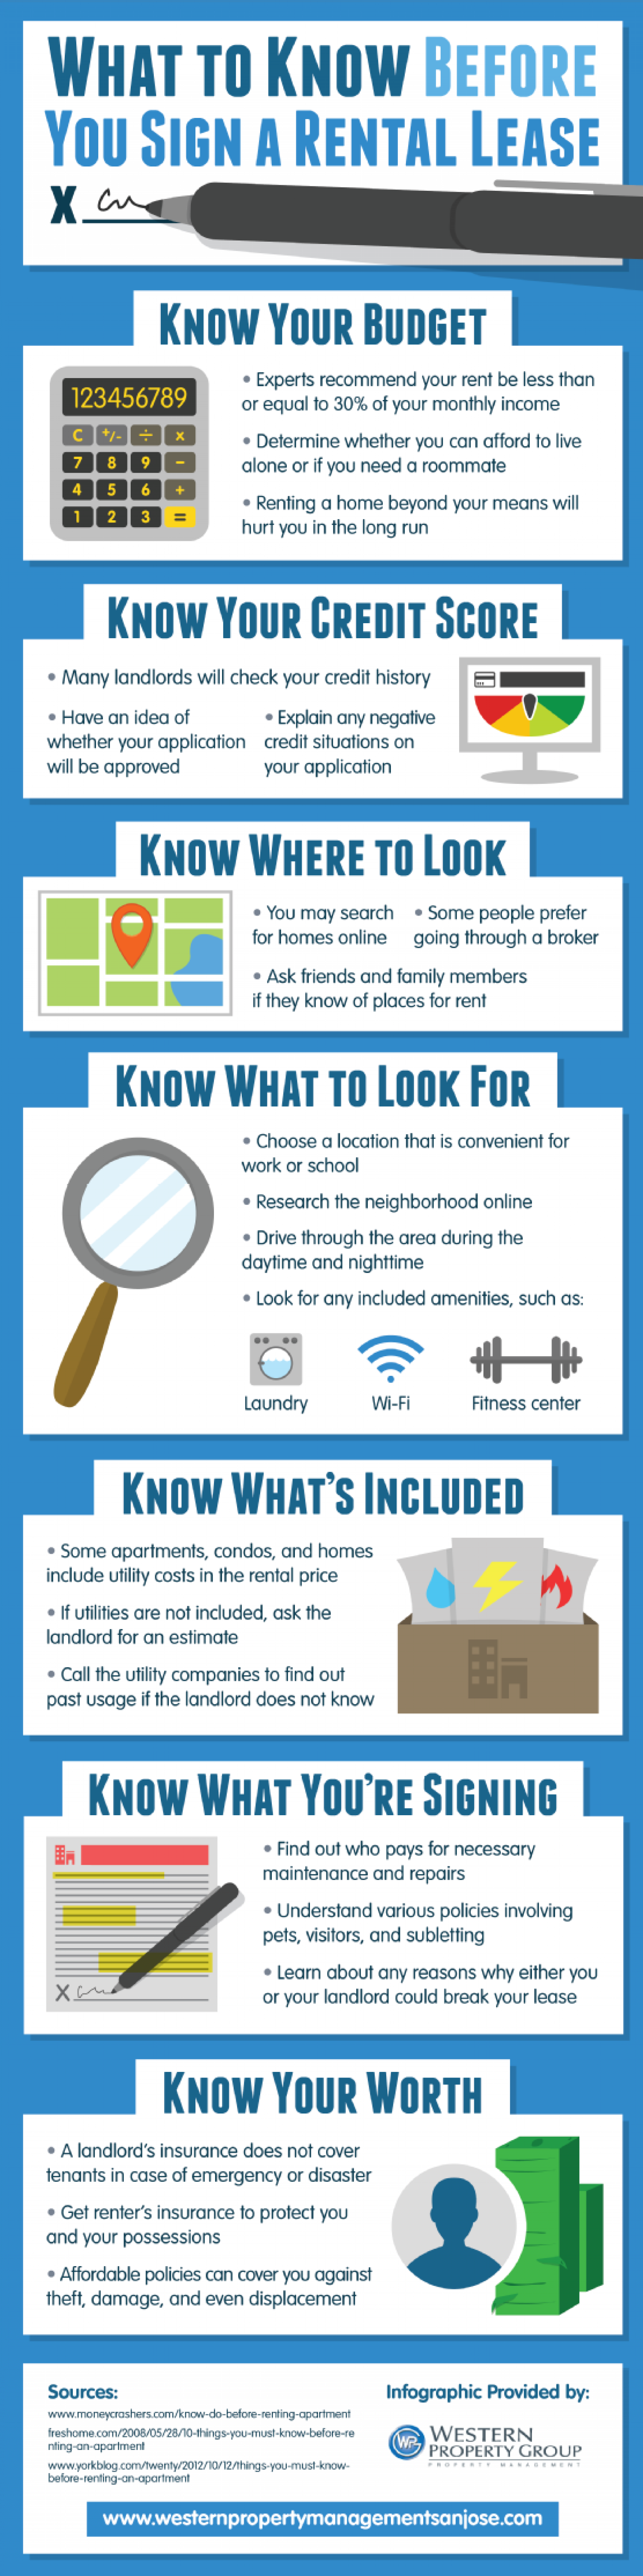 What to Know Before You Sign a Rental Lease Infographic